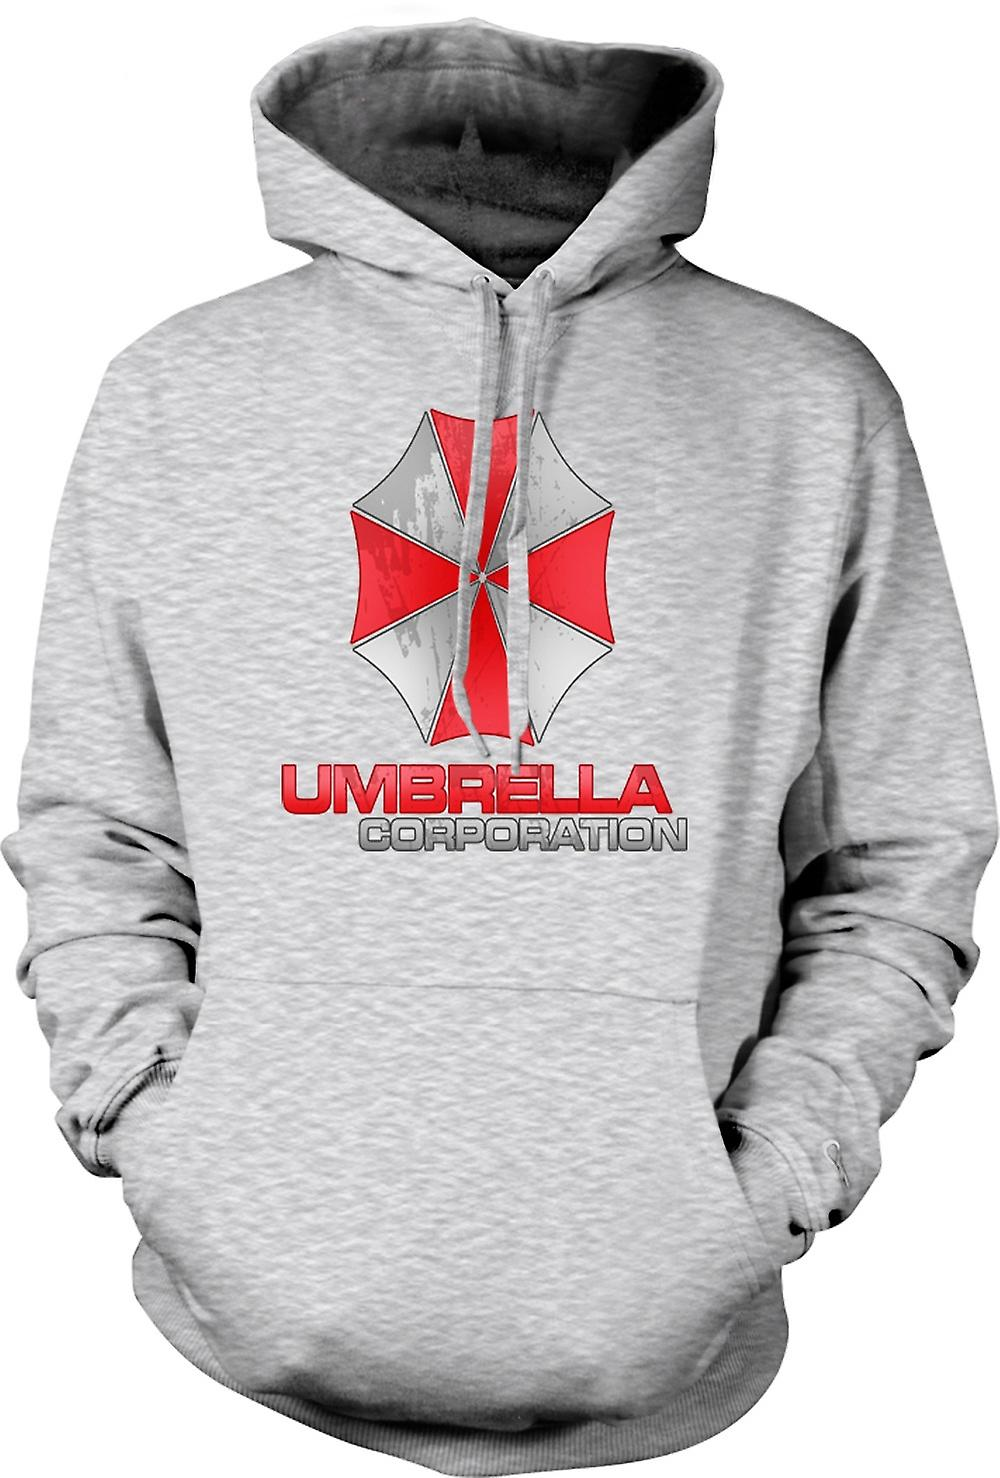 Mens Hoodie - Umberella Corporation